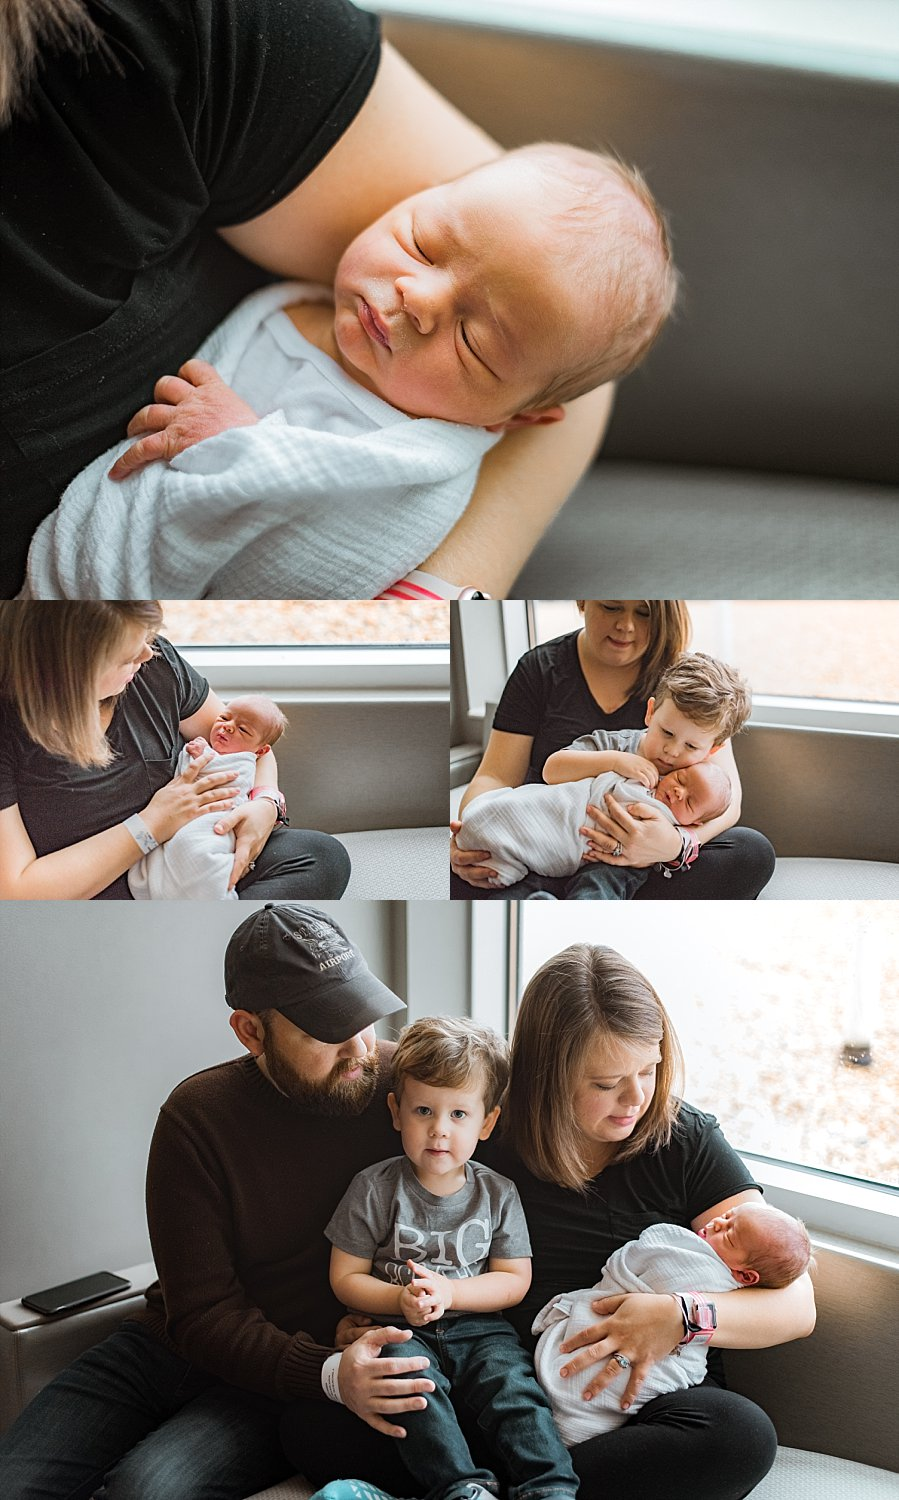 Family with new baby at hospital | Why you should hire a Fresh 48 Photographer | adriennelouisephotography.com